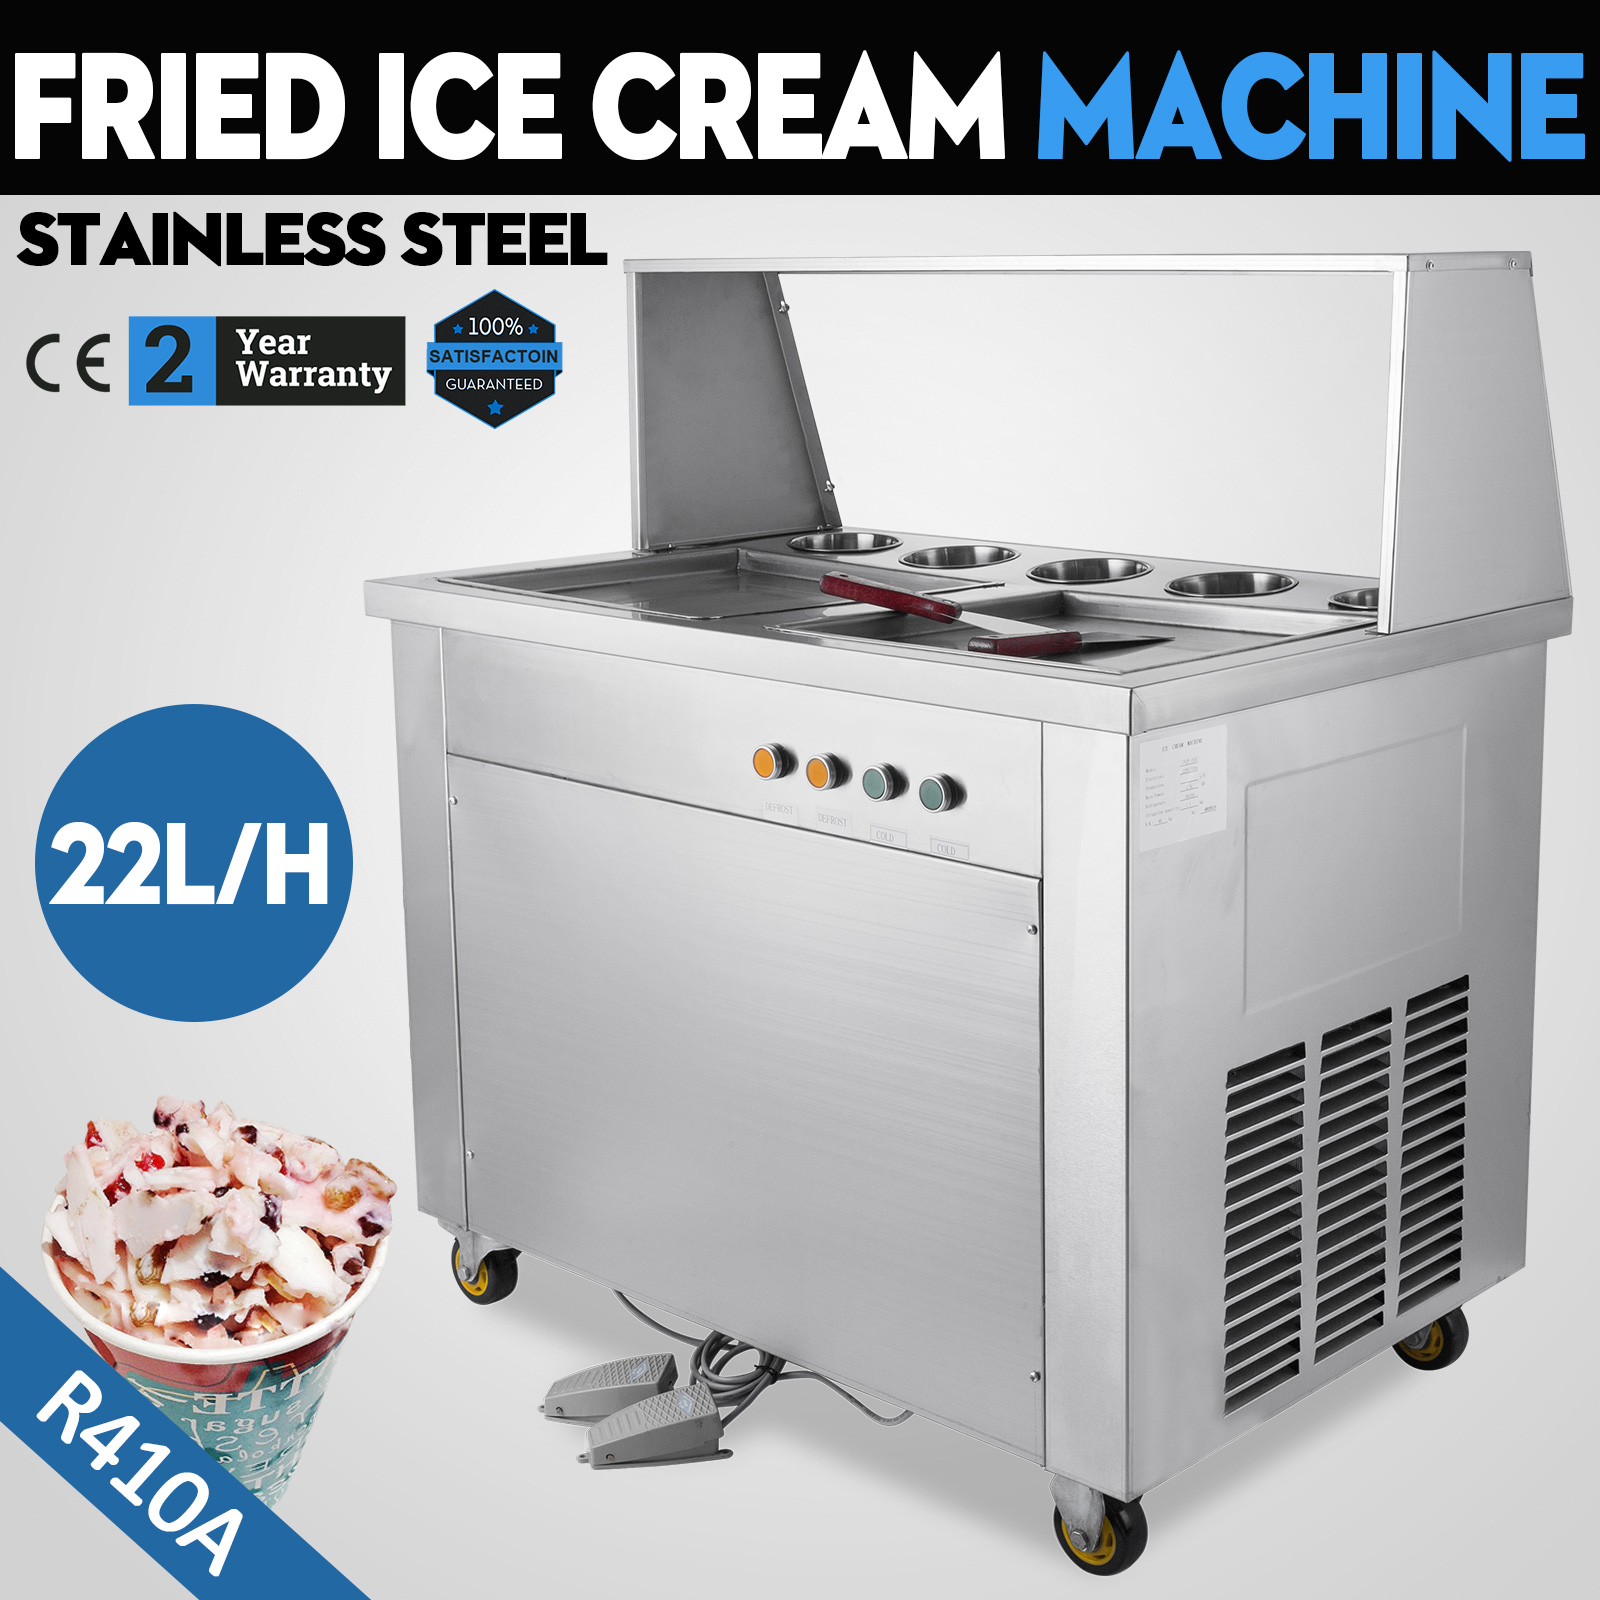 Commercial Fried Ice Cream Machine 304 Stainless Steel